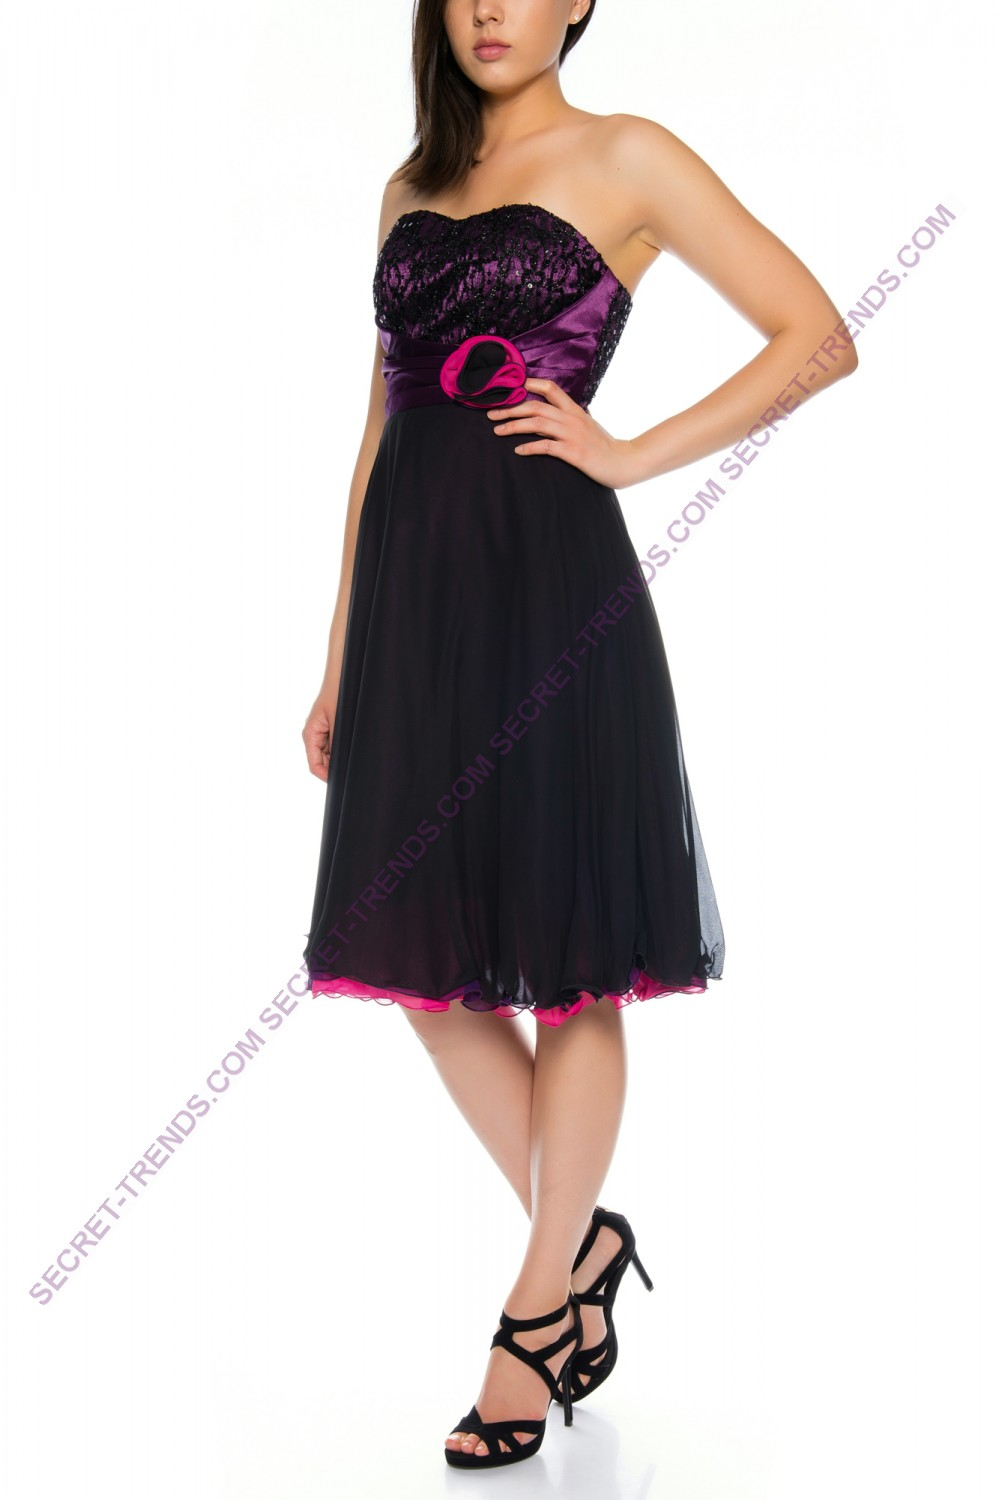 Three-layer chiffon dress in different colors R1178